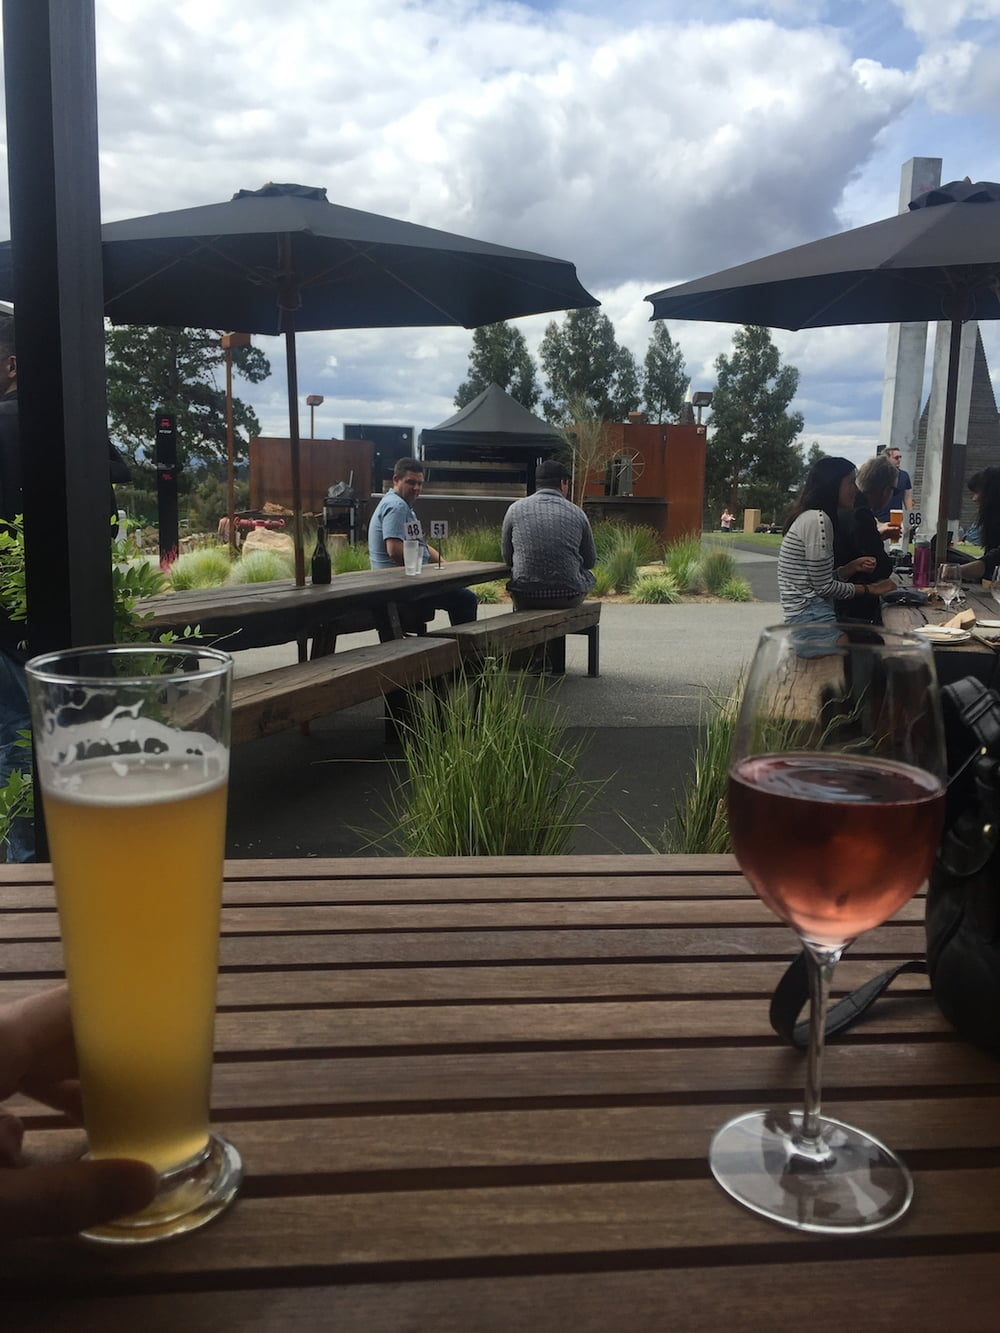 Enjoying a beverage at MONA (it's amazing btw) after spending the day wondering through the museum.